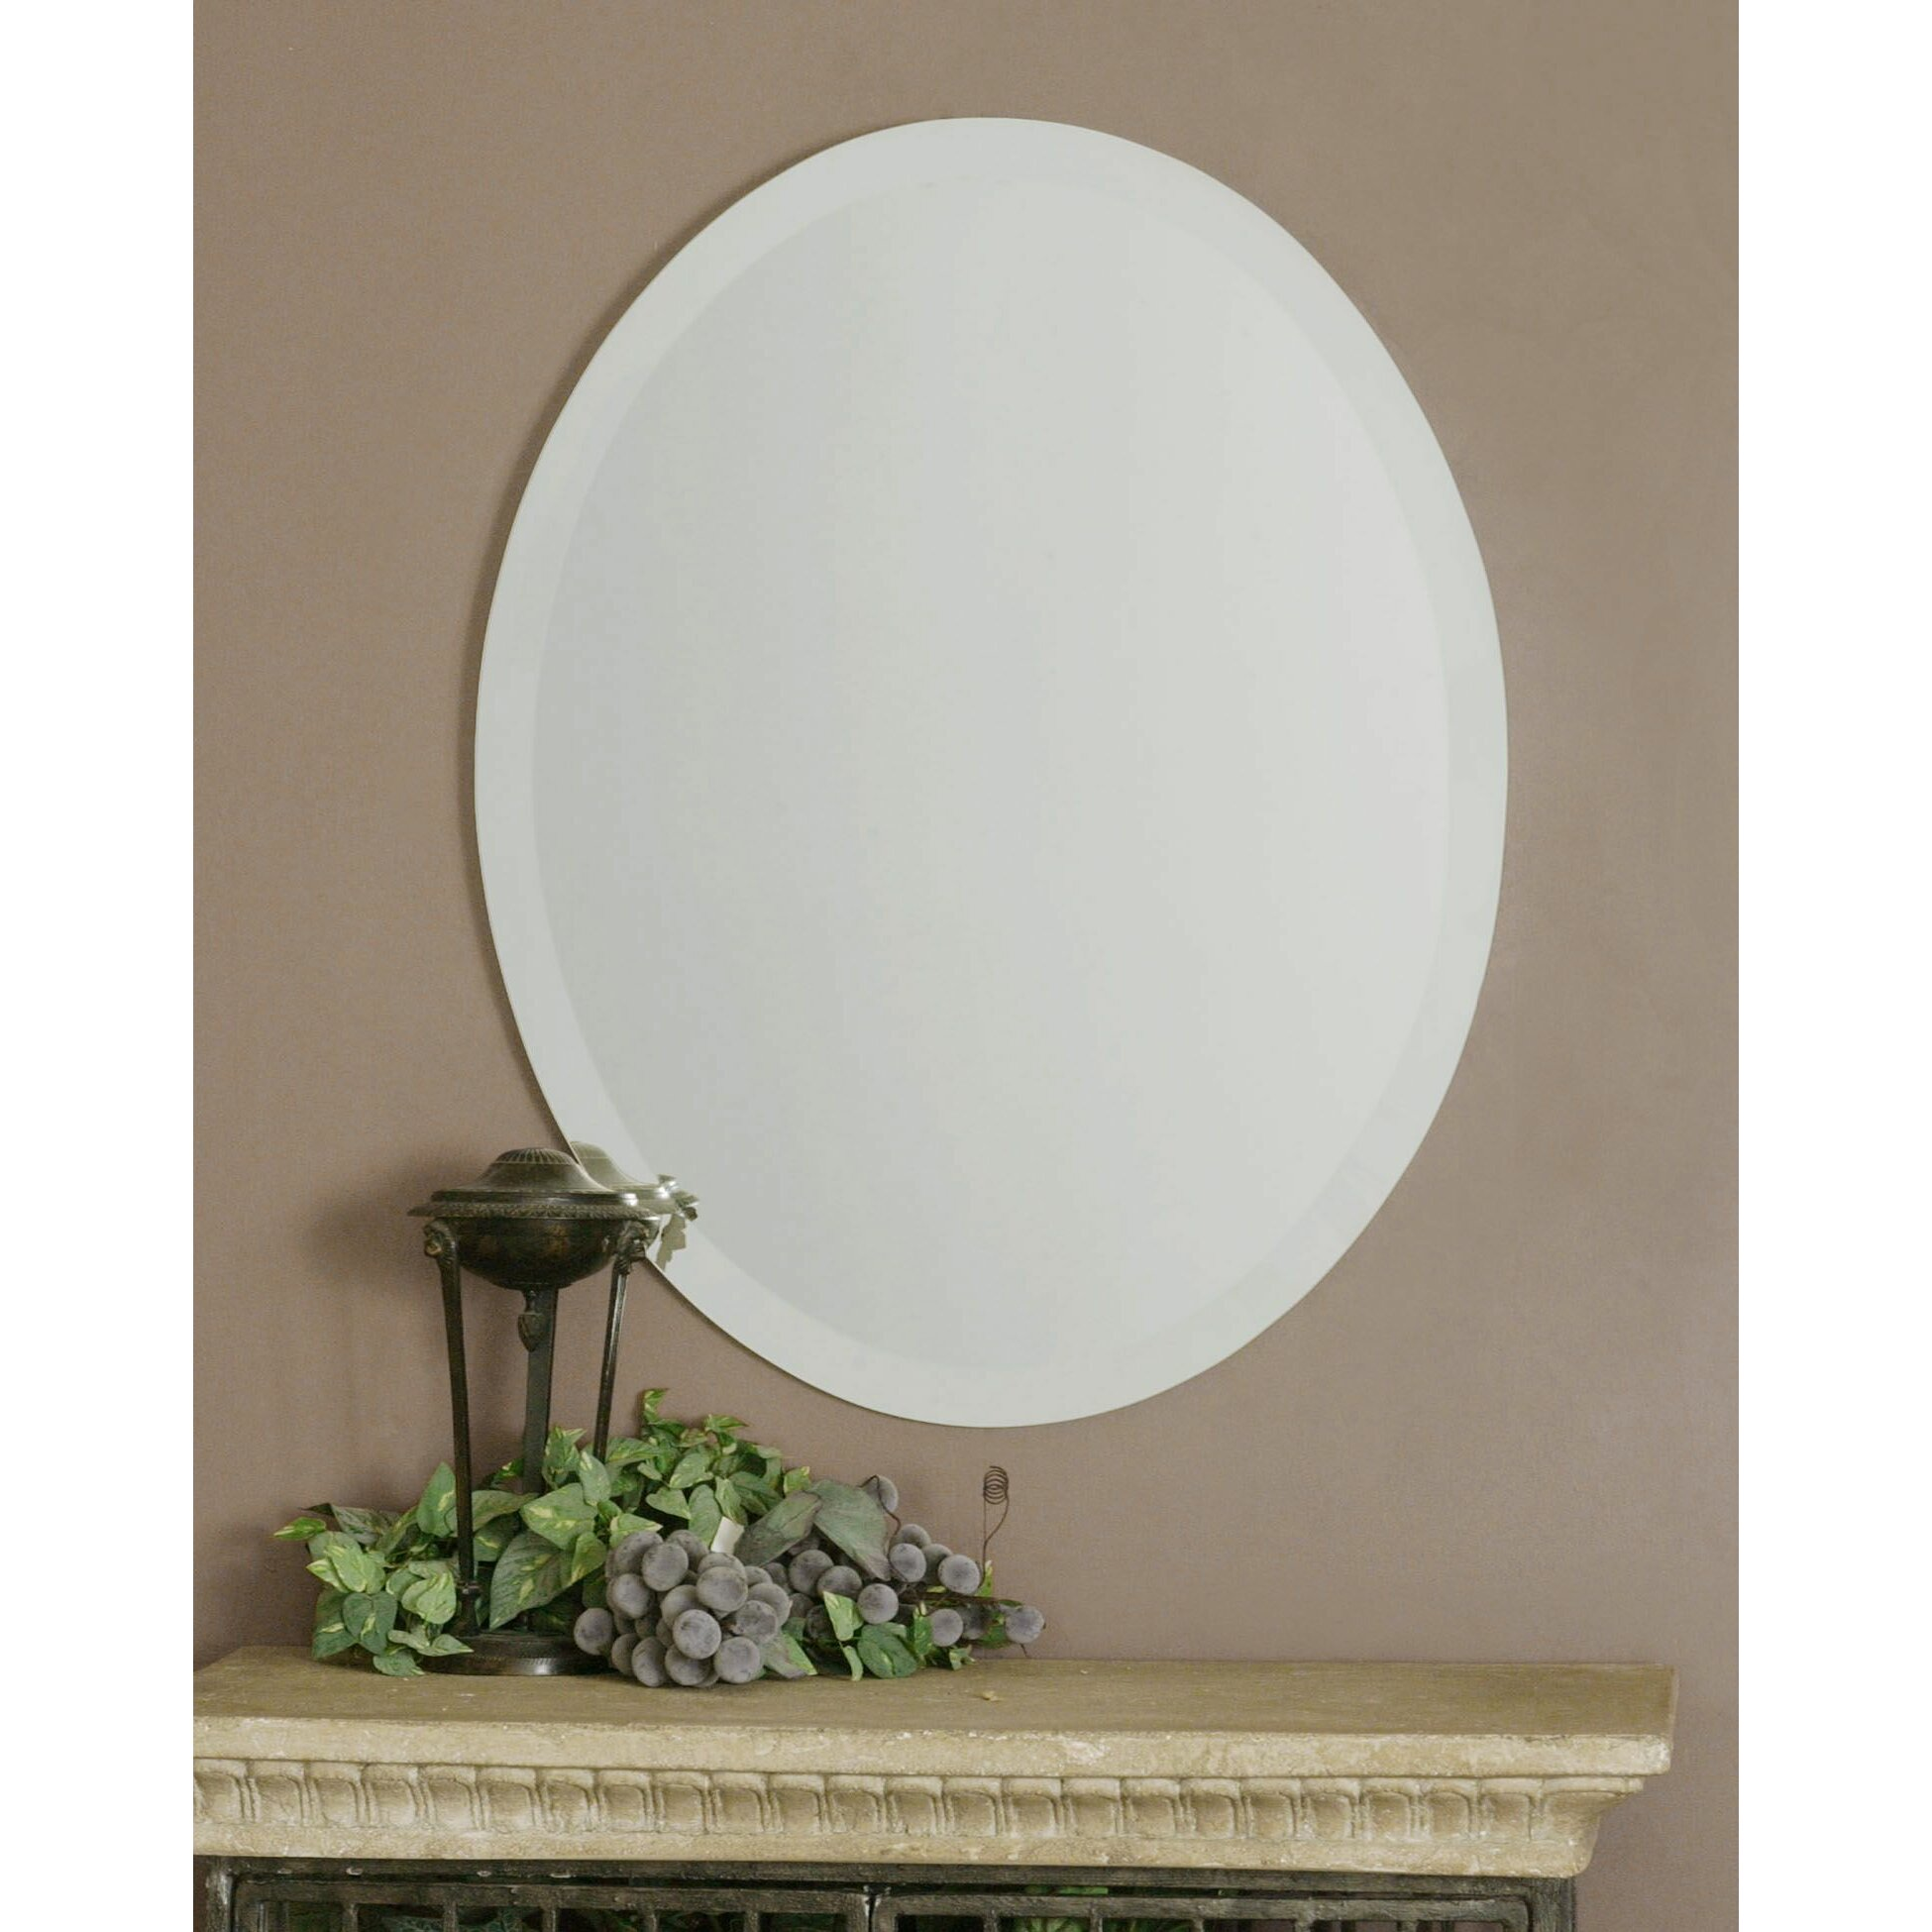 Red barrel studio frameless vanity oval wall mirror for Oval wall mirror